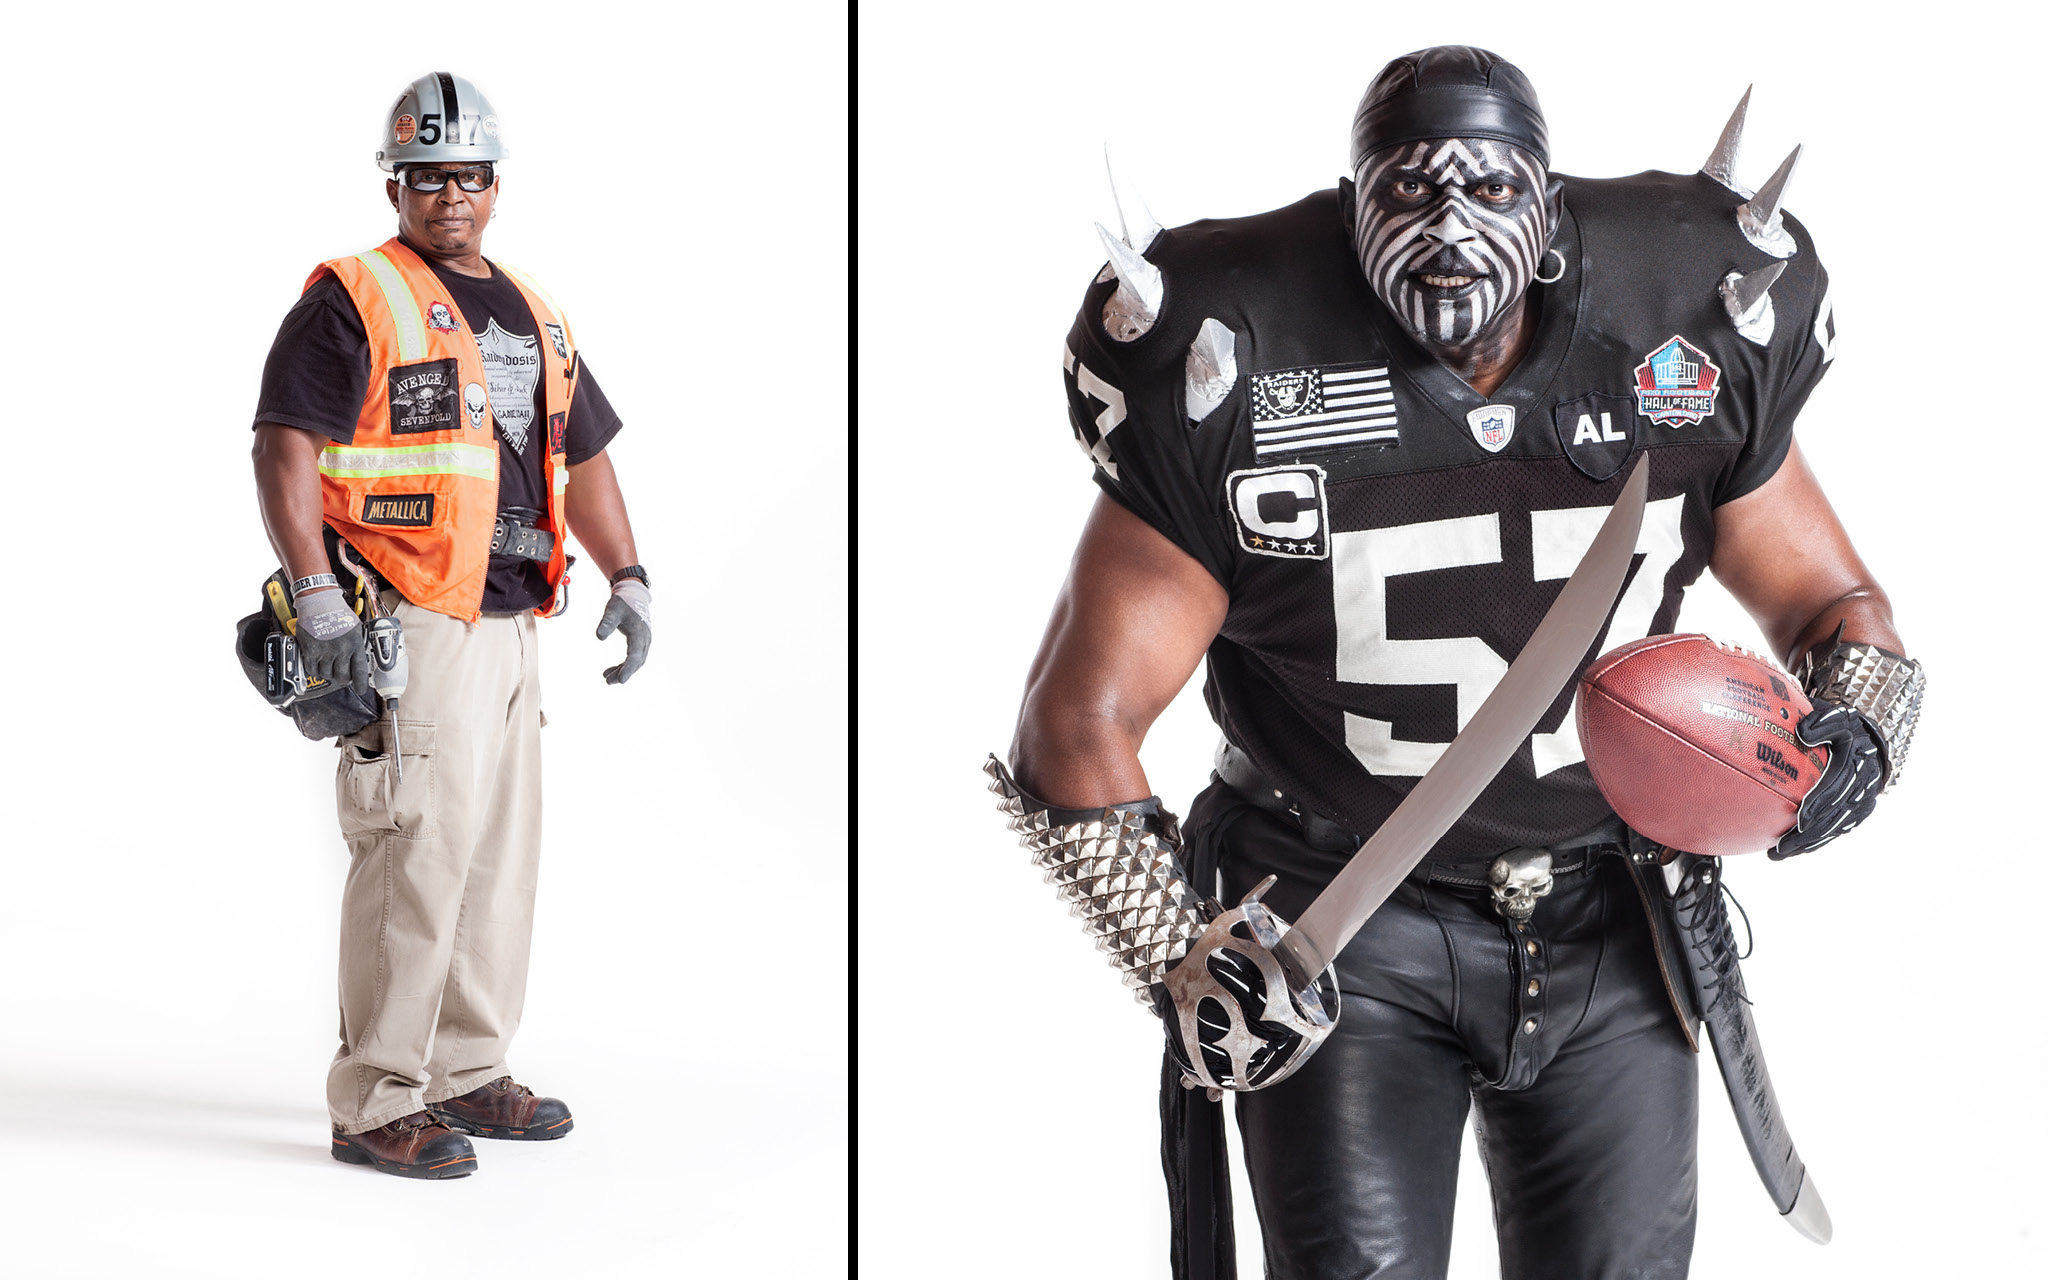 reputable site 4f0c4 344bb Welcome to Oakland - RAIDER NATION: BEHIND THE MAKEUP - ESPN